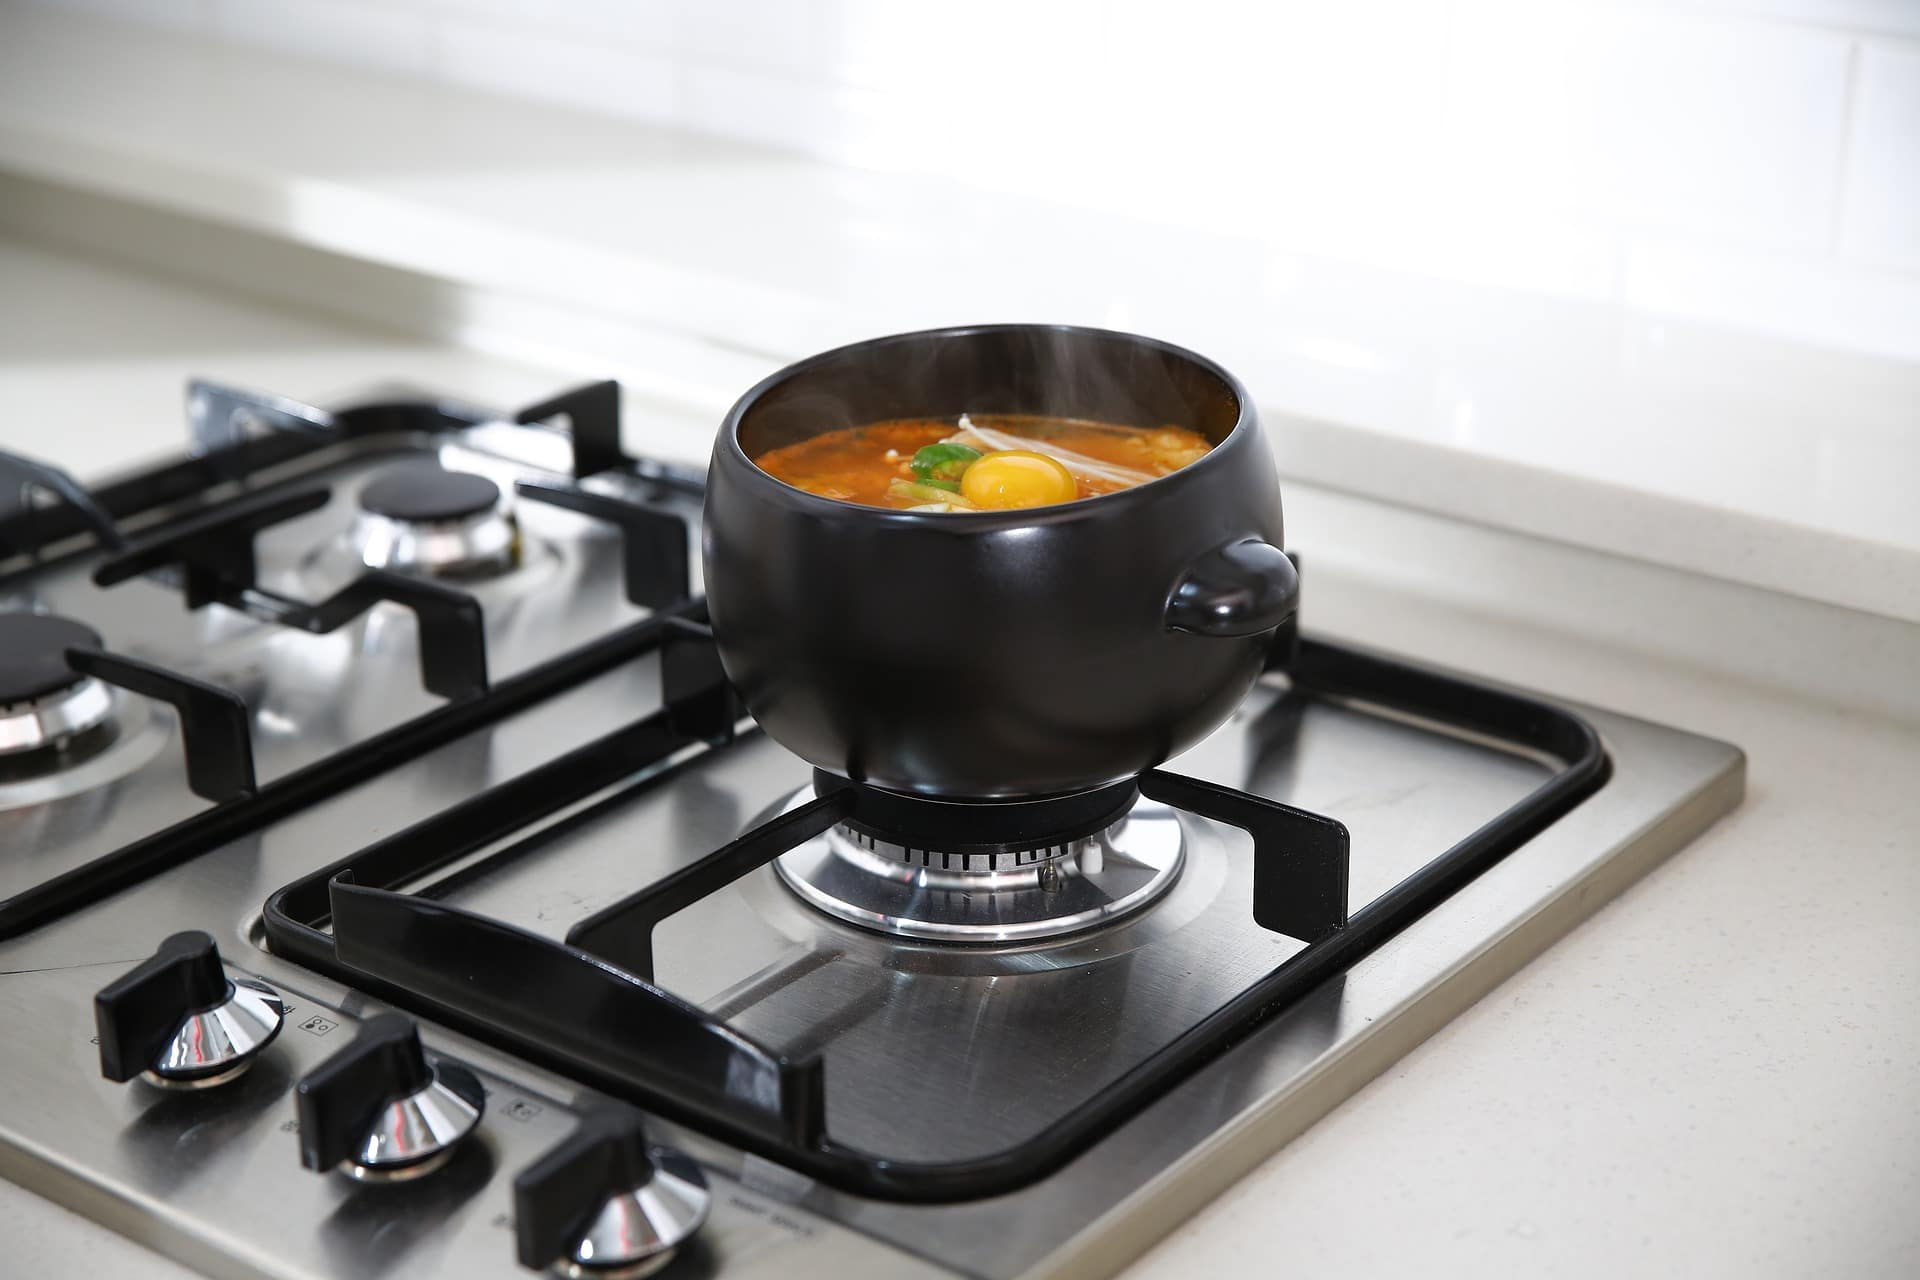 gas stove pot, large soup pot